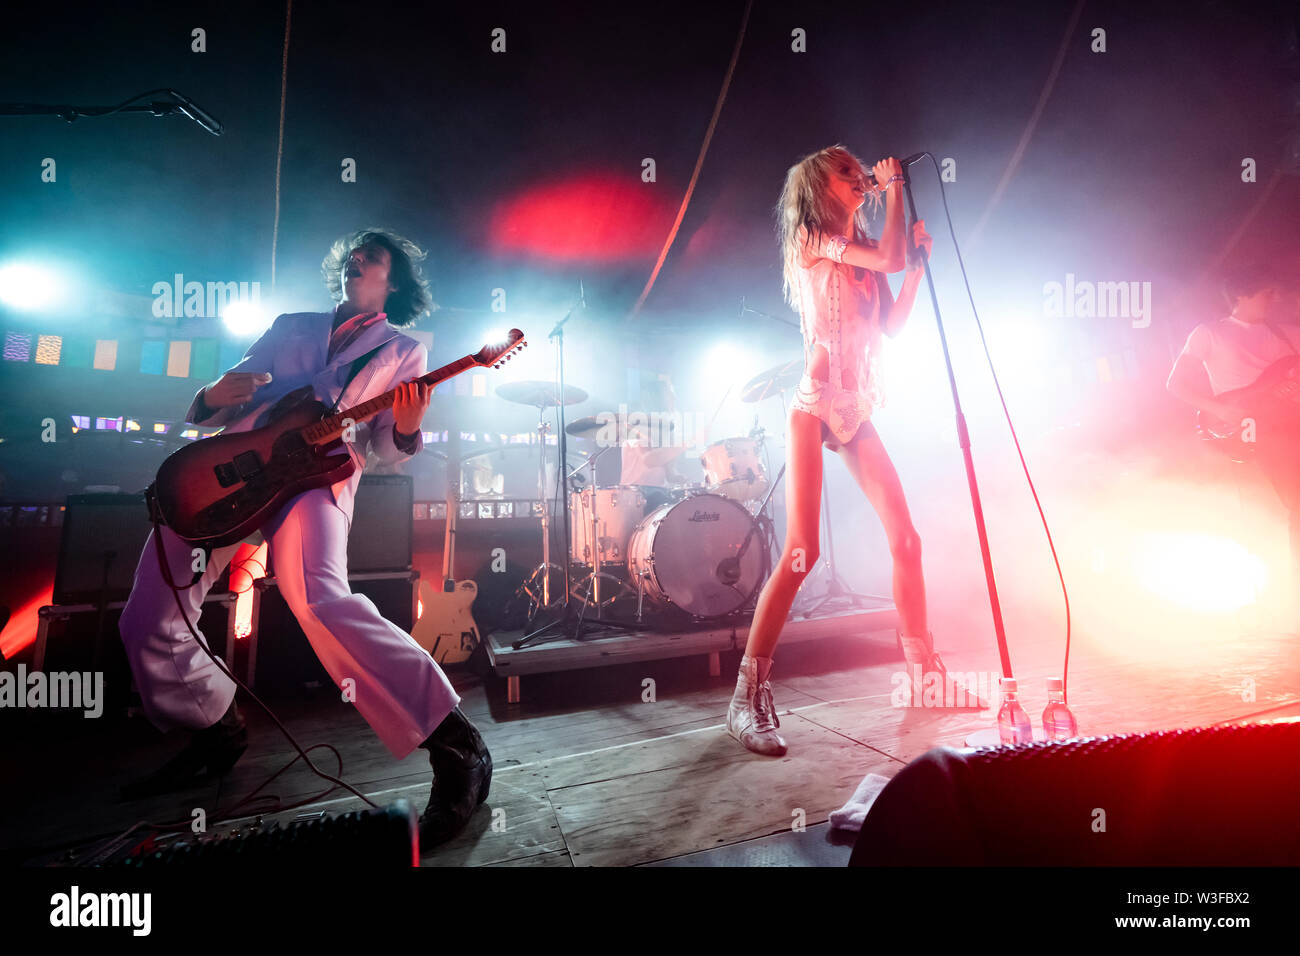 Bergen, Norway - June 15th, 2019. The American punk band Starcrawler performs a live concert during the Norwegian music festival Bergenfest 2019 in Bergen. Here vocalist Arrow de Wilde is seen live on stage with guitarist Henri Cash. (Photo credit: Gonzales Photo - Jarle H. Moe). - Stock Image